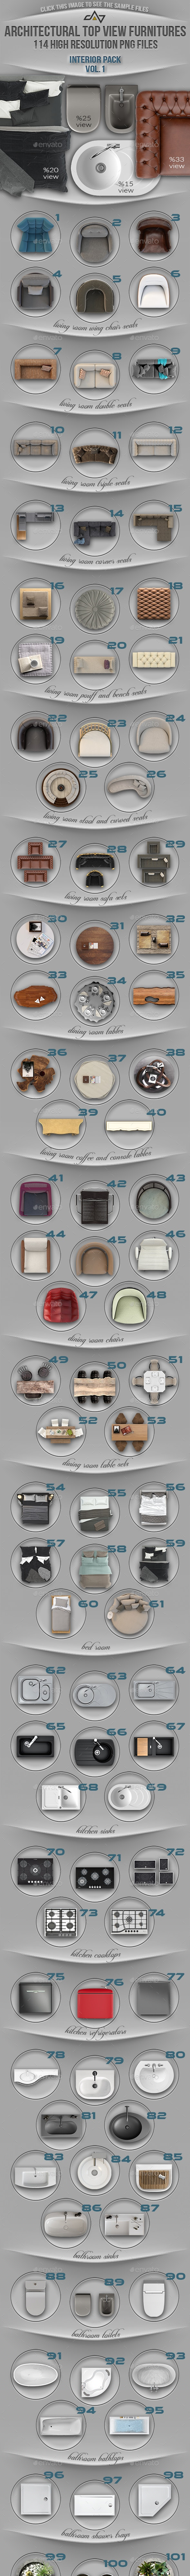 114 Top View Furnitures for 3D Floor Plans Vol 1 - Miscellaneous Product Mock-Ups